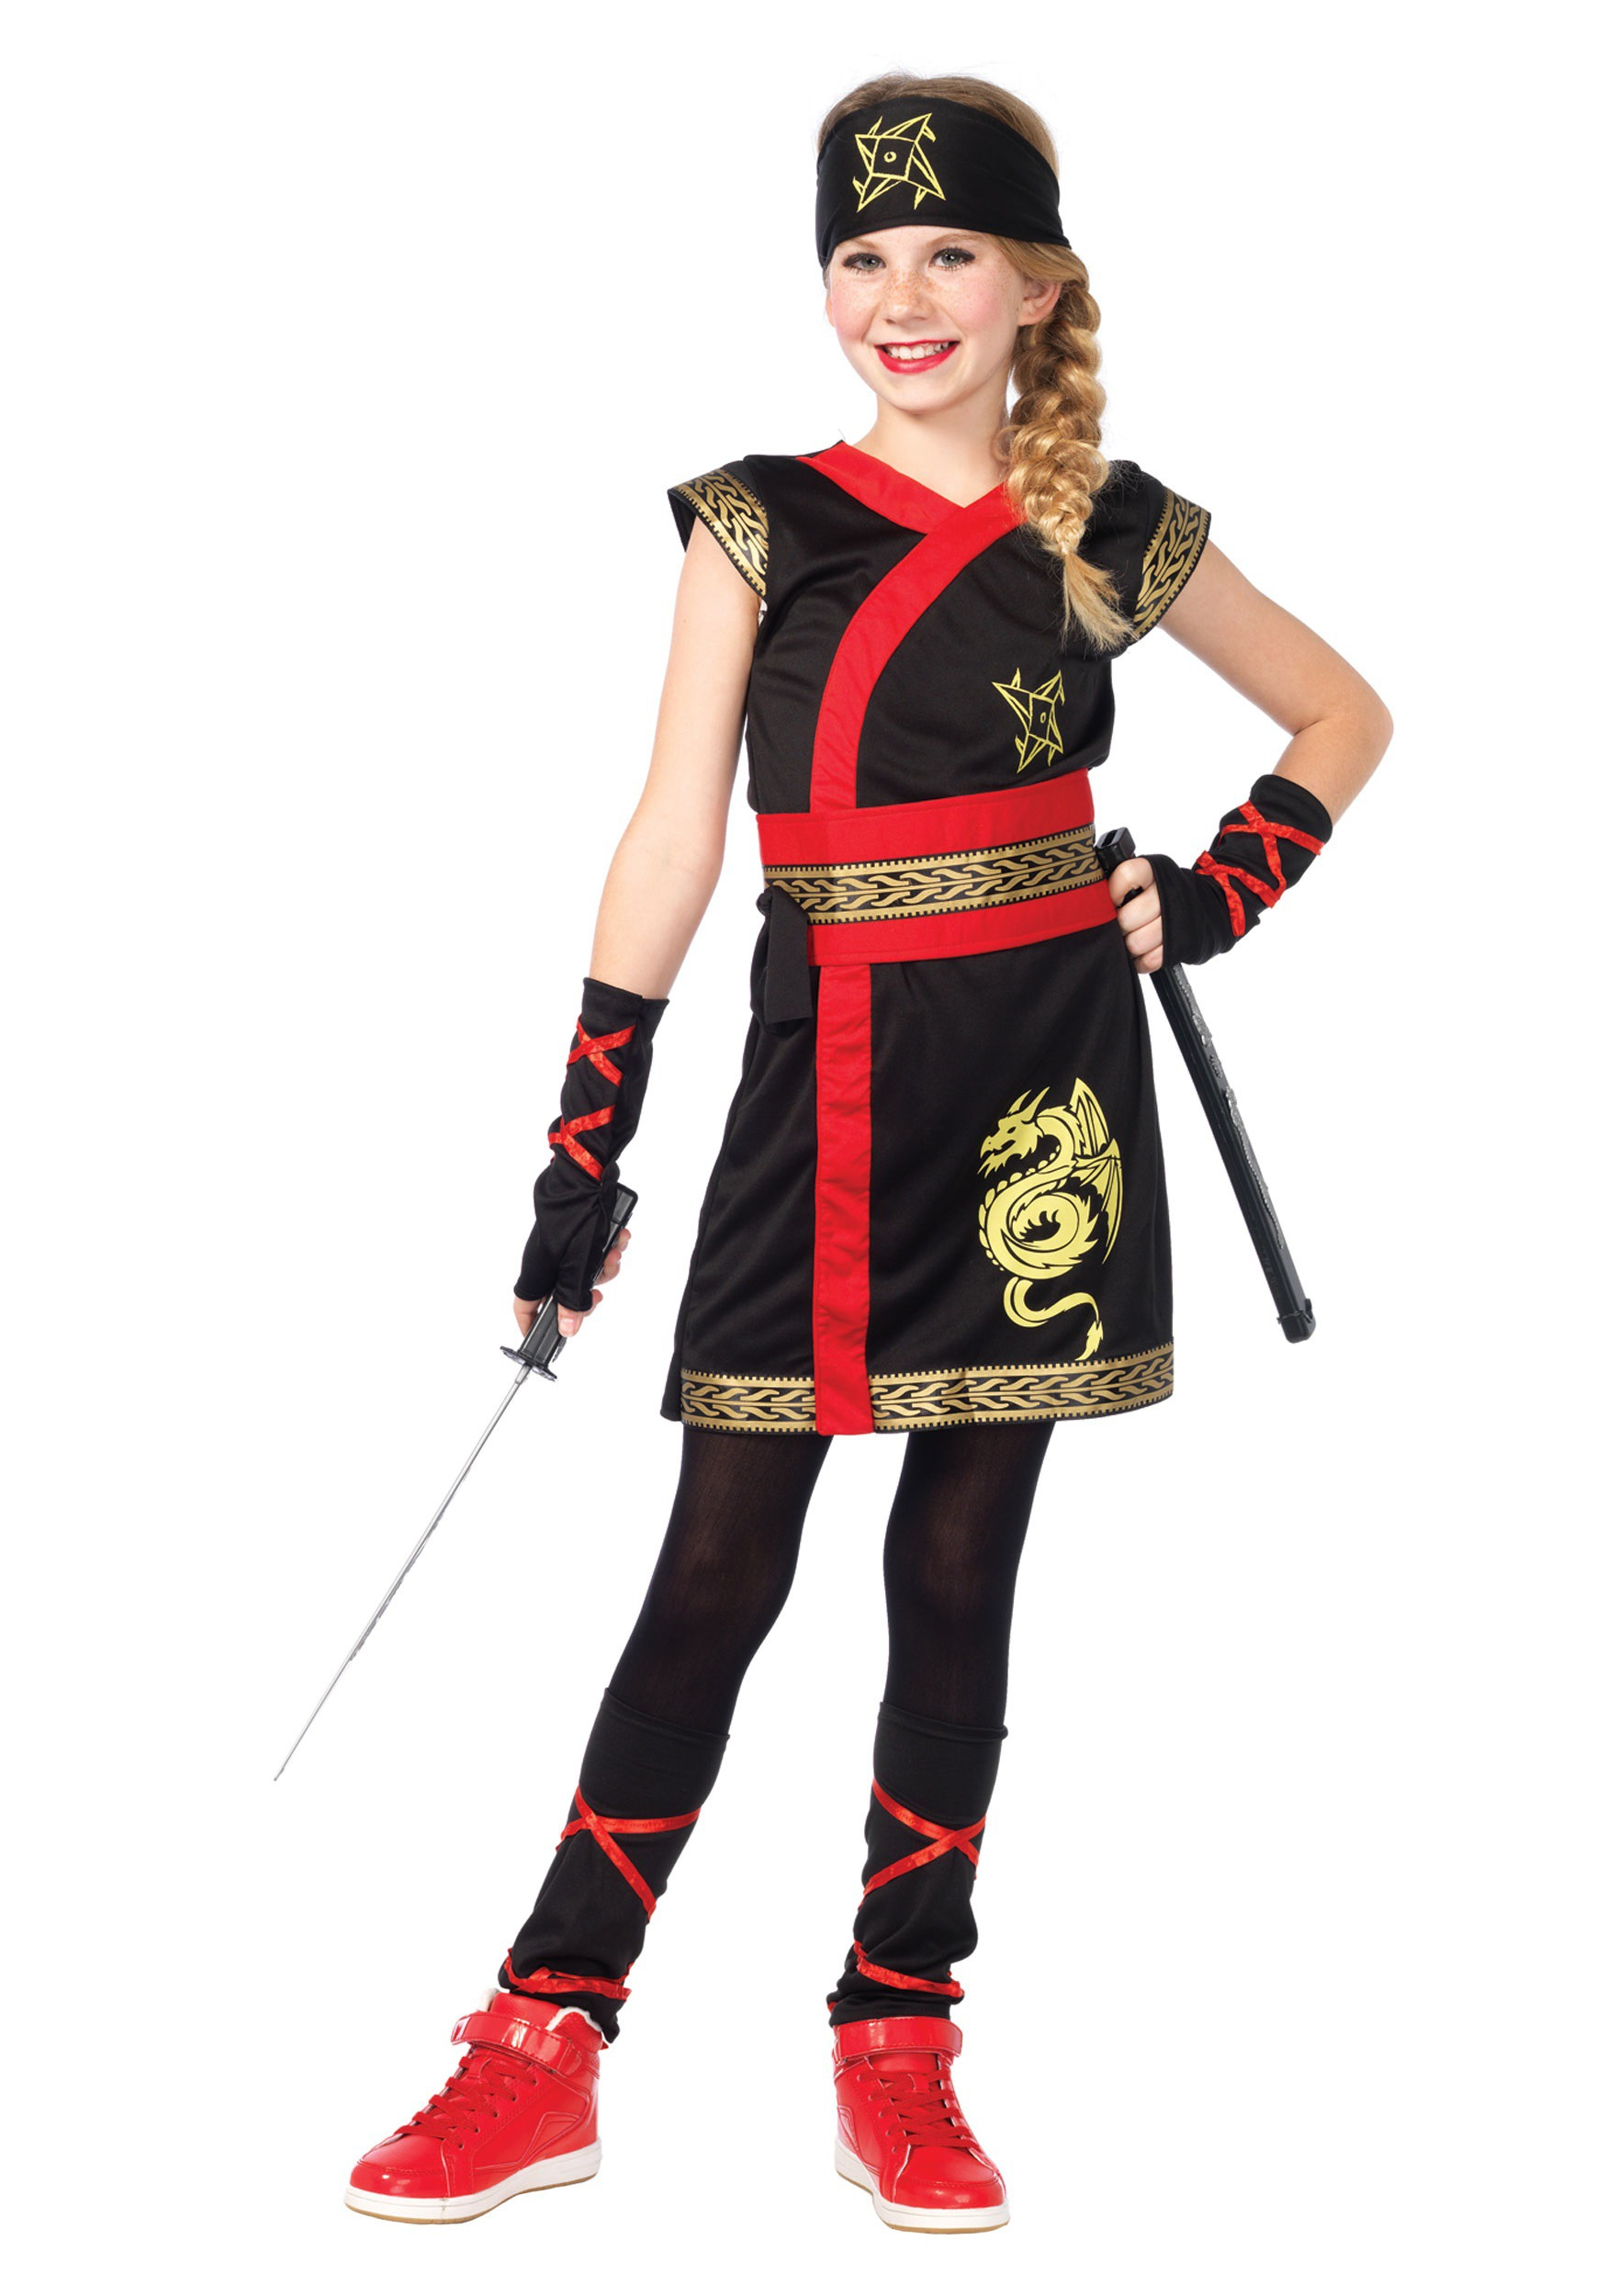 Girls Ninja Warrior Costume